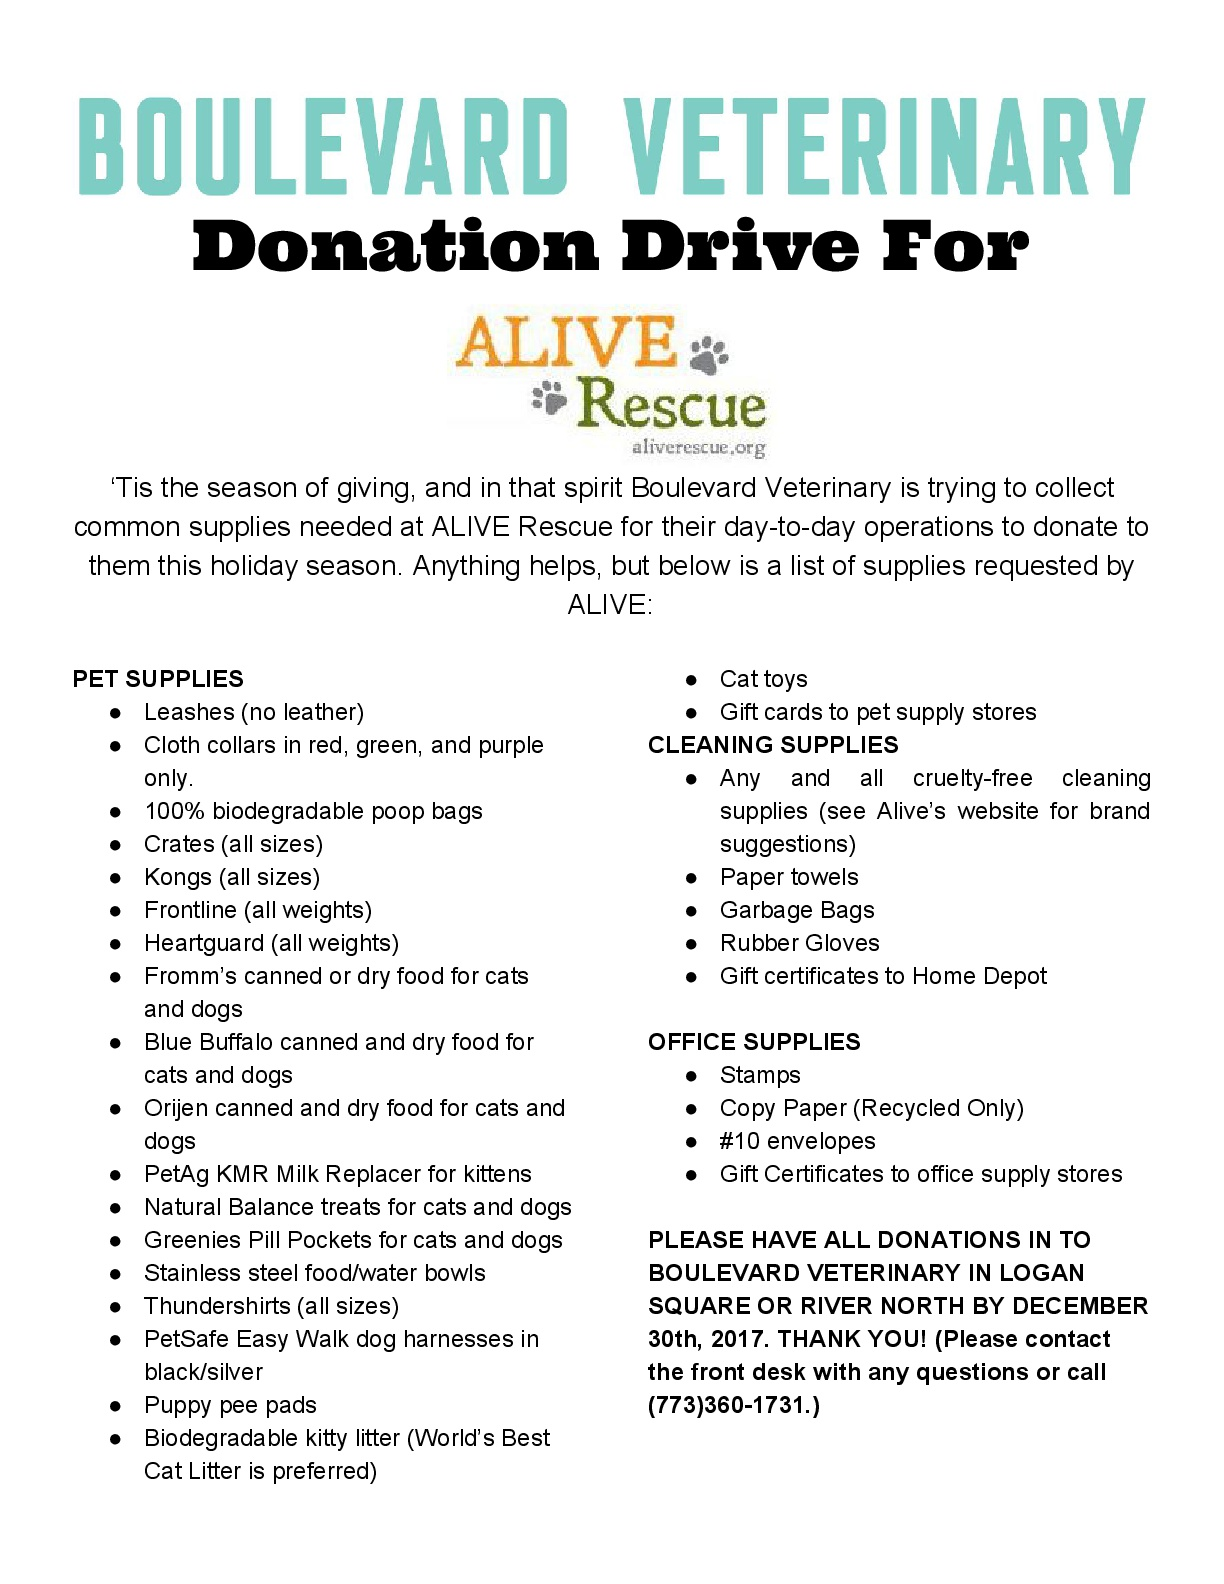 BLVD Vet  ALIVE RESCUE Donation Drive